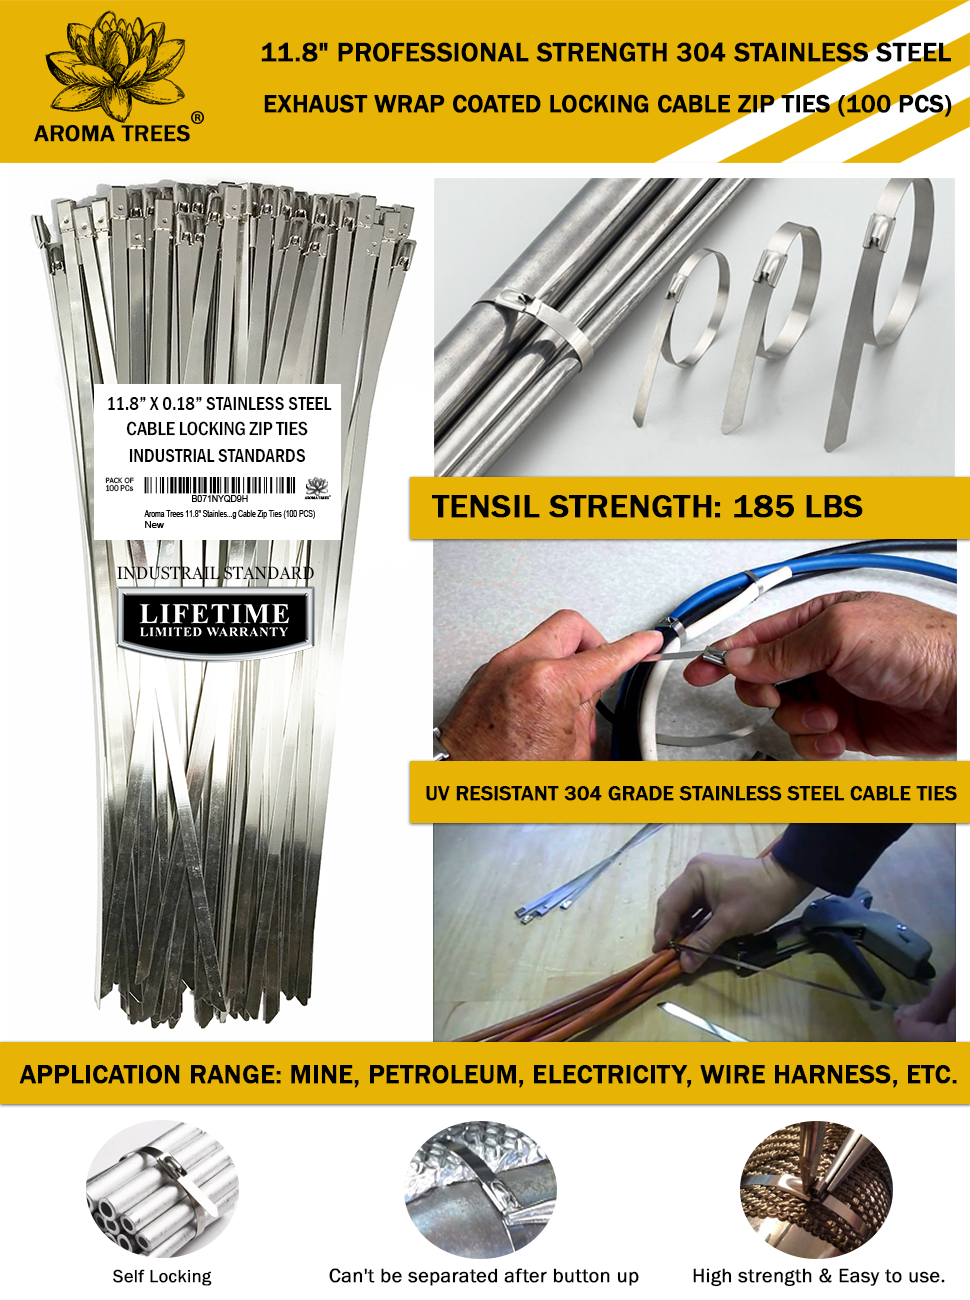 Aroma Trees 100 Pcs Metal Zip Ties 118 304 Stainless Wiring Harness Wrap Professional Strength Steel Exhaust Coated Locking Cable